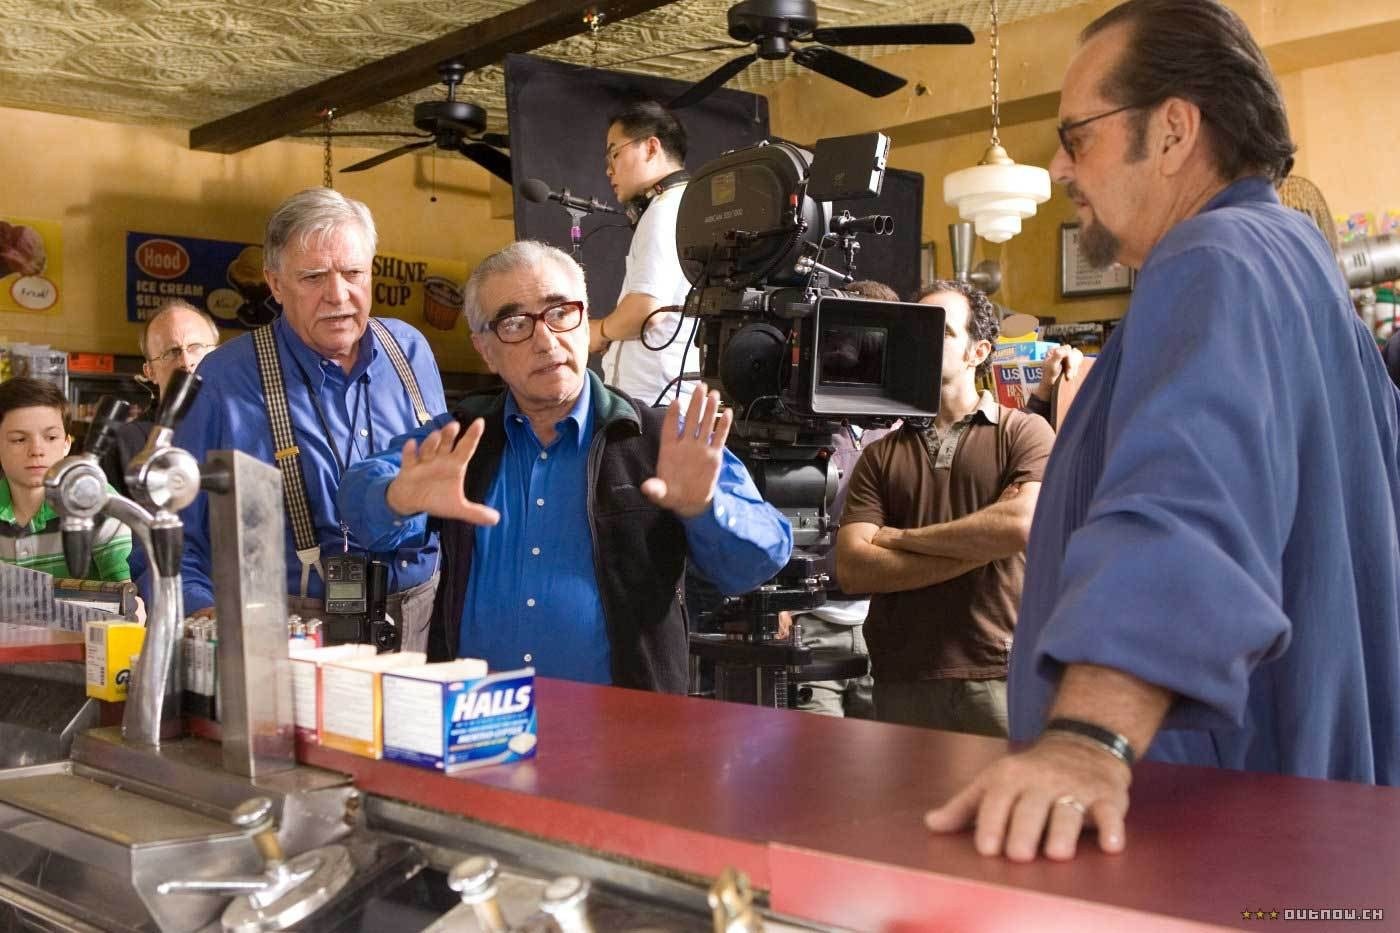 The Departed (2006) Behind the Scenes